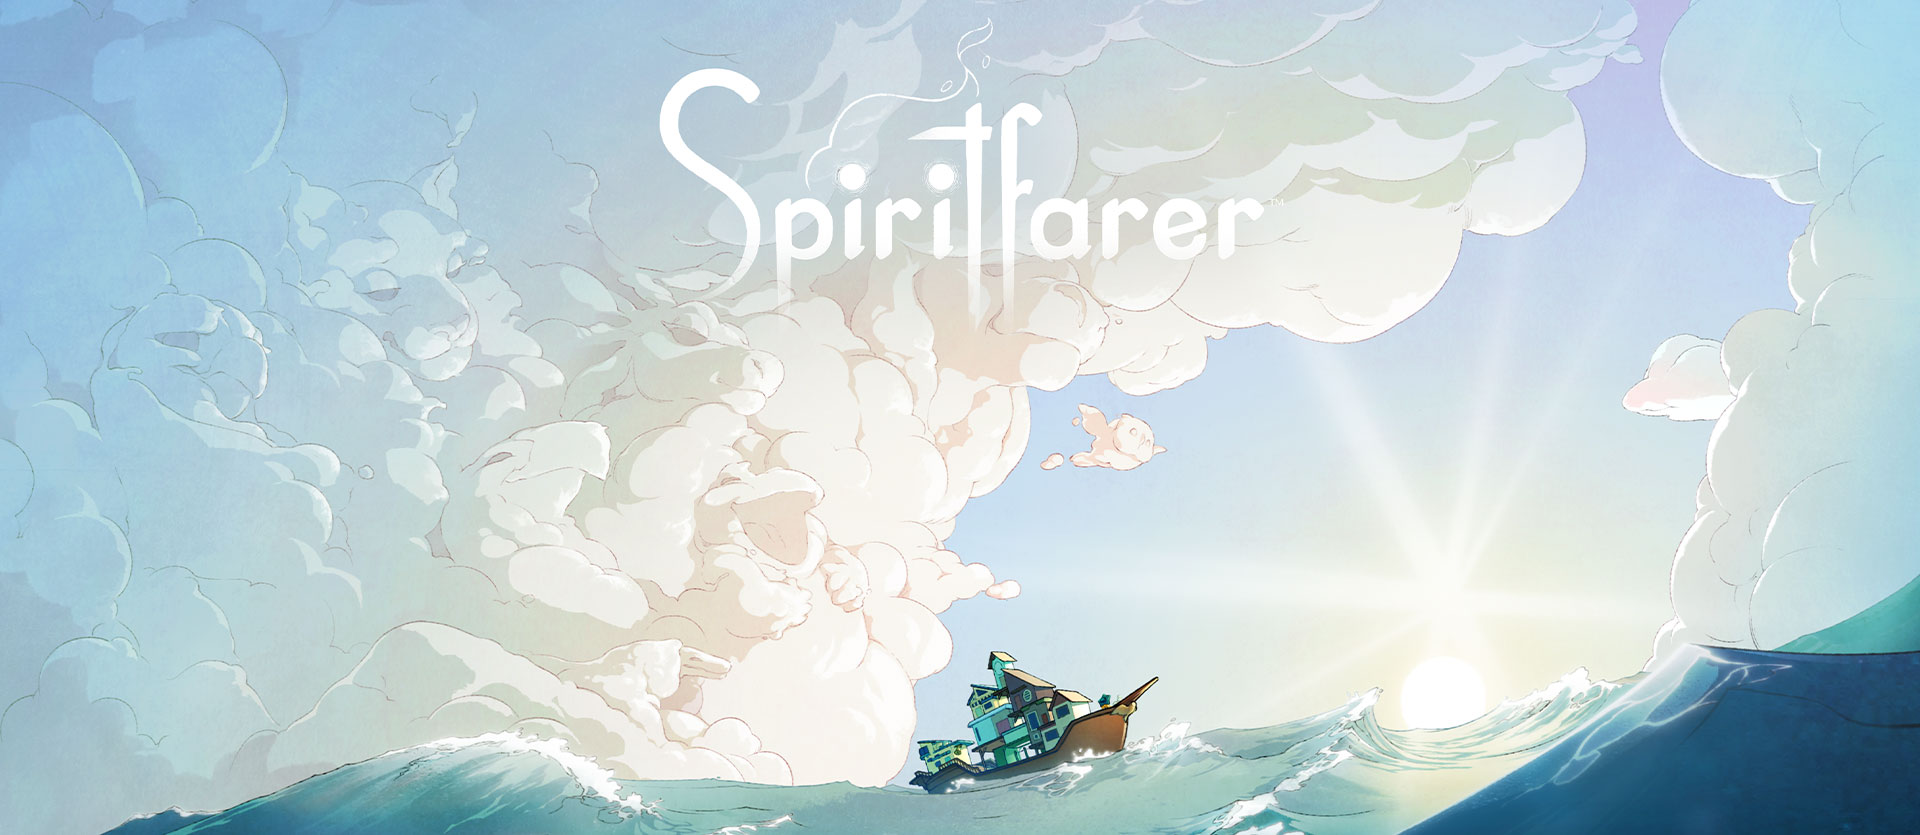 Spiritfarer logo, boat on the water with clouds forming different animals